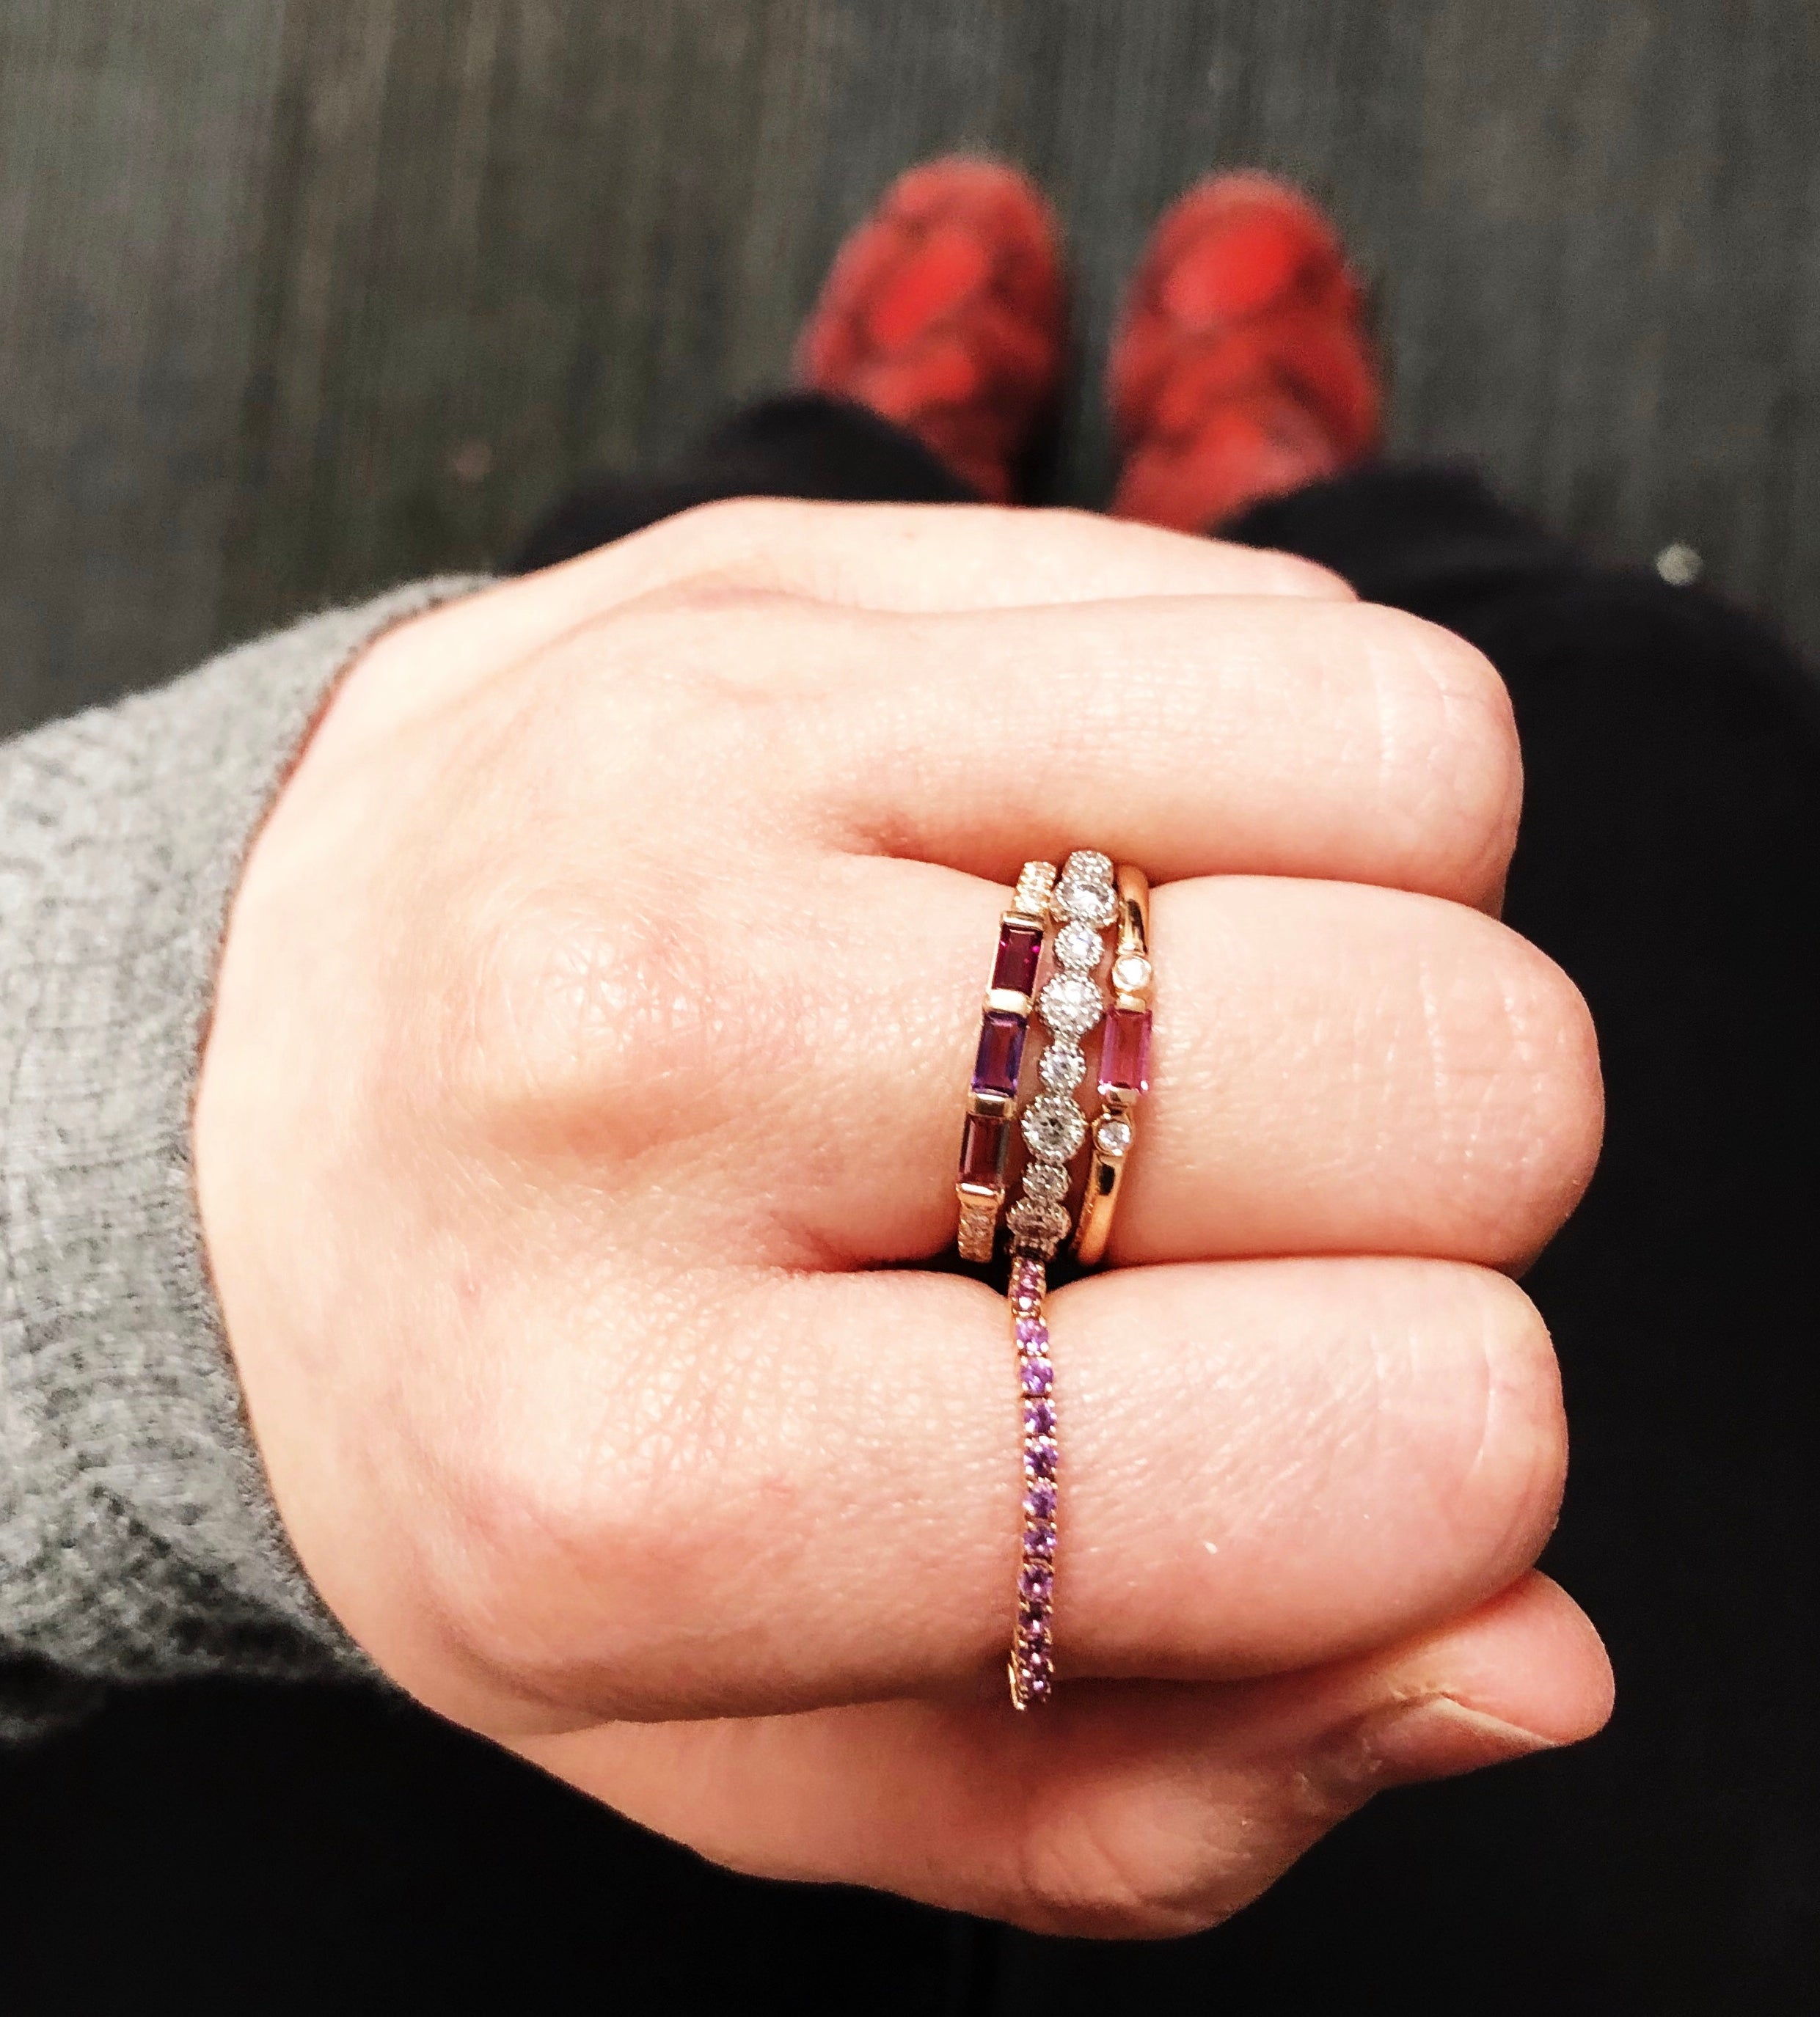 Amethyst Pixie ring with pink ring stack